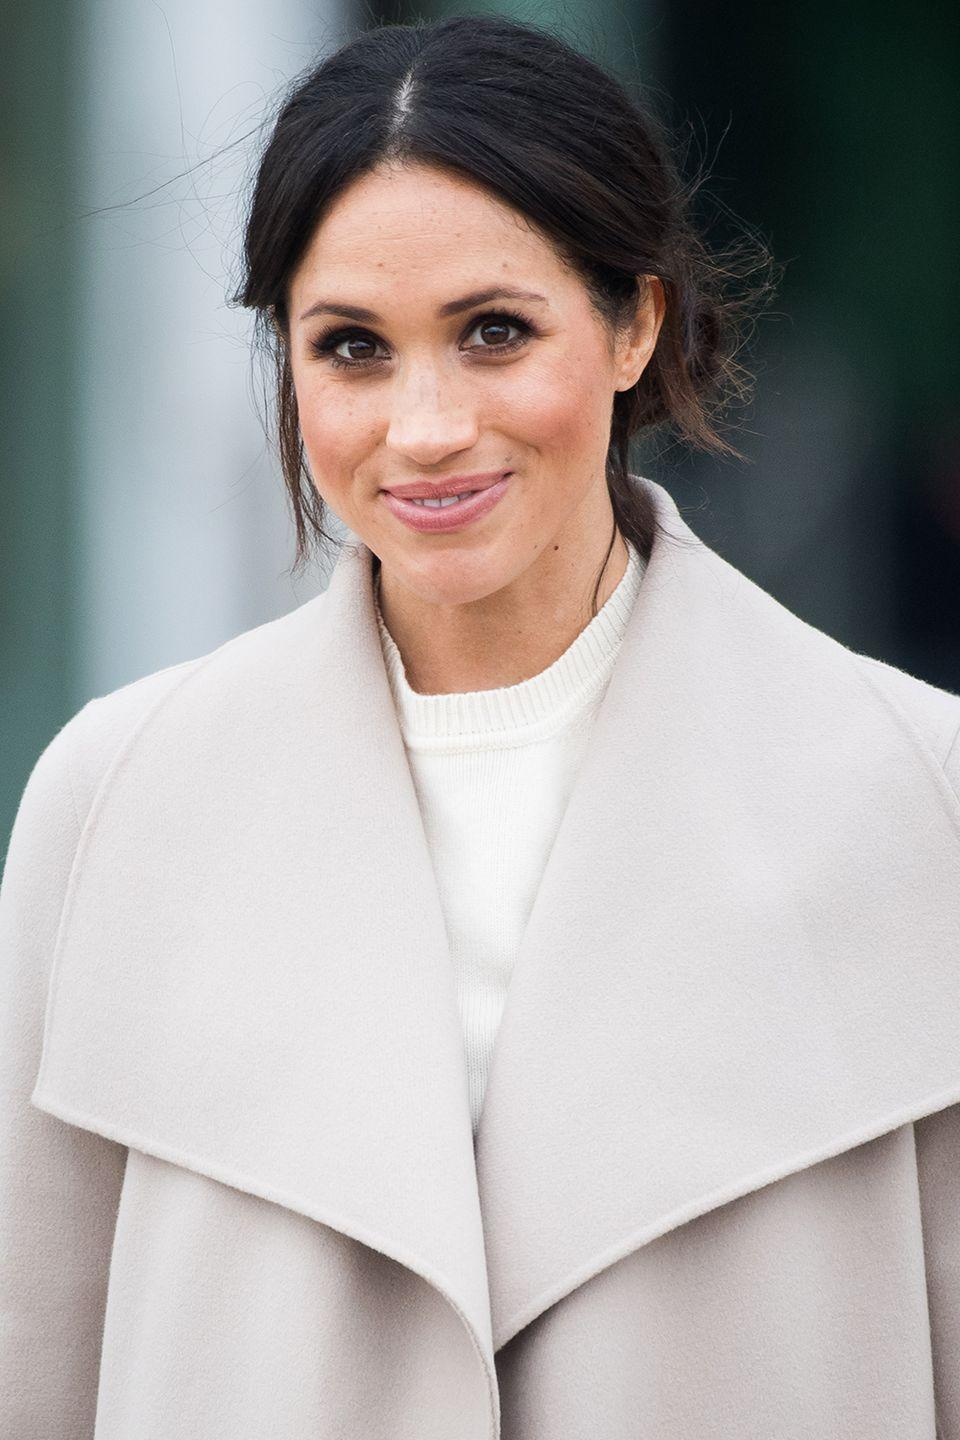 """<p><strong>Born</strong>: Rachel Meghan Markle<br></p><p>It's now common knowledge that Meghan Markle's <a href=""""https://www.harpersbazaar.com/celebrity/latest/a9916635/meghan-markle-real-name/"""" rel=""""nofollow noopener"""" target=""""_blank"""" data-ylk=""""slk:real first name"""" class=""""link rapid-noclick-resp"""">real first name</a> is Rachel, though her birth name doesn't much matter, as she's now <a href=""""https://www.harpersbazaar.com/celebrity/latest/a13939431/meghan-markle-royal-title/"""" rel=""""nofollow noopener"""" target=""""_blank"""" data-ylk=""""slk:a Duchess"""" class=""""link rapid-noclick-resp""""> a Duchess</a>.</p>"""